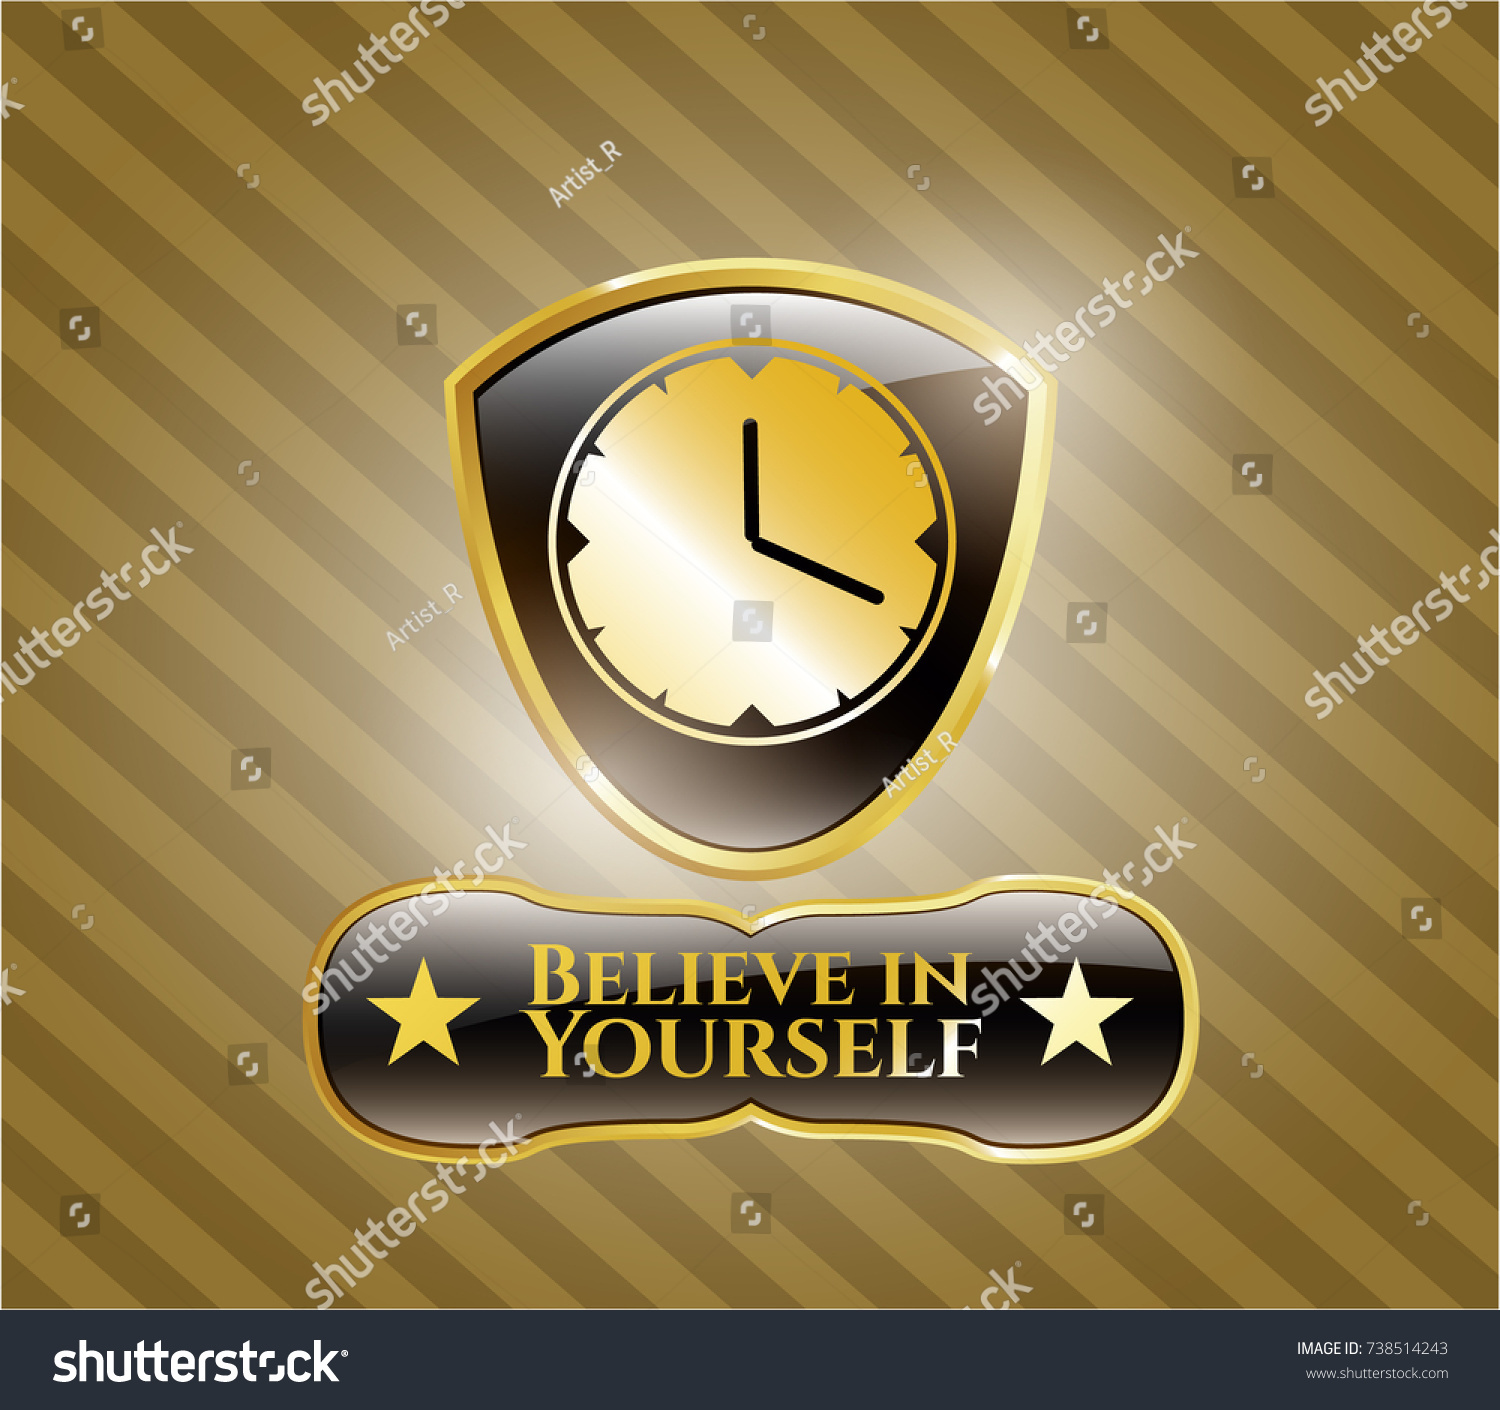 Gold Shiny Badge Clock Time Icon Stock Vector 2018 738514243